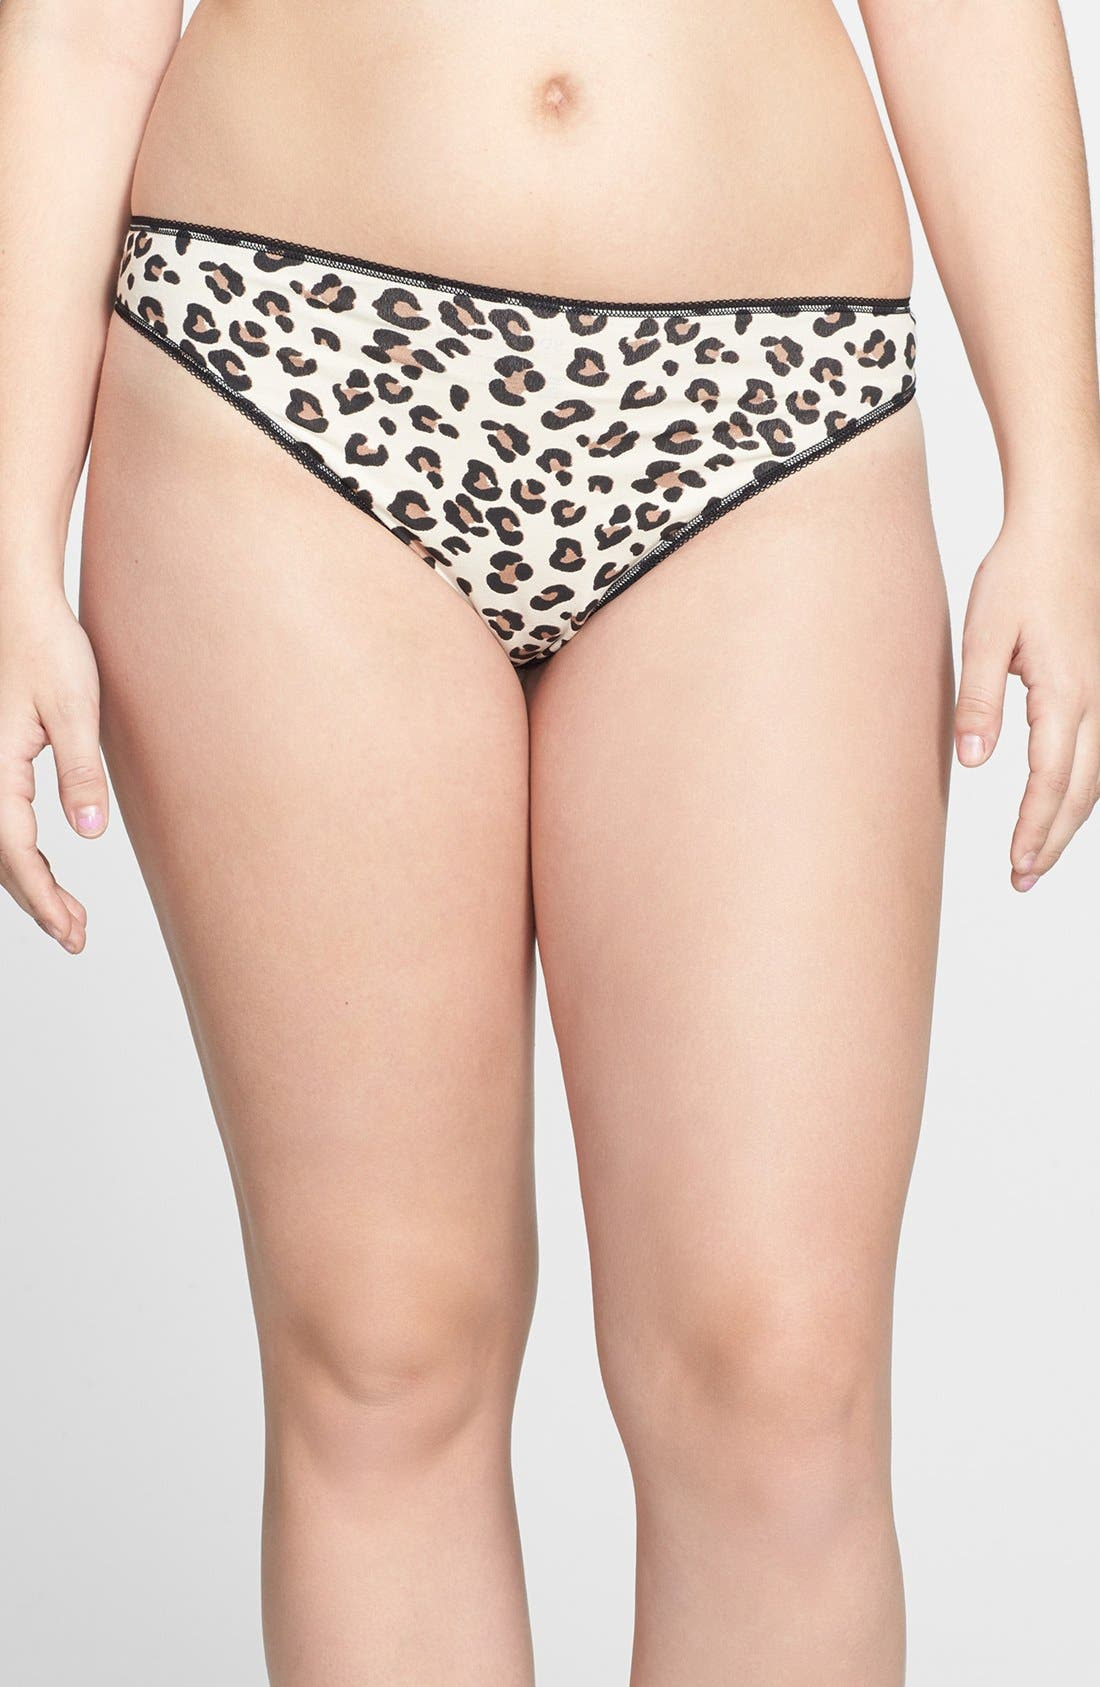 Alternate Image 1 Selected - Nordstrom Cotton Blend Thong (Plus Size) (3 for $25)